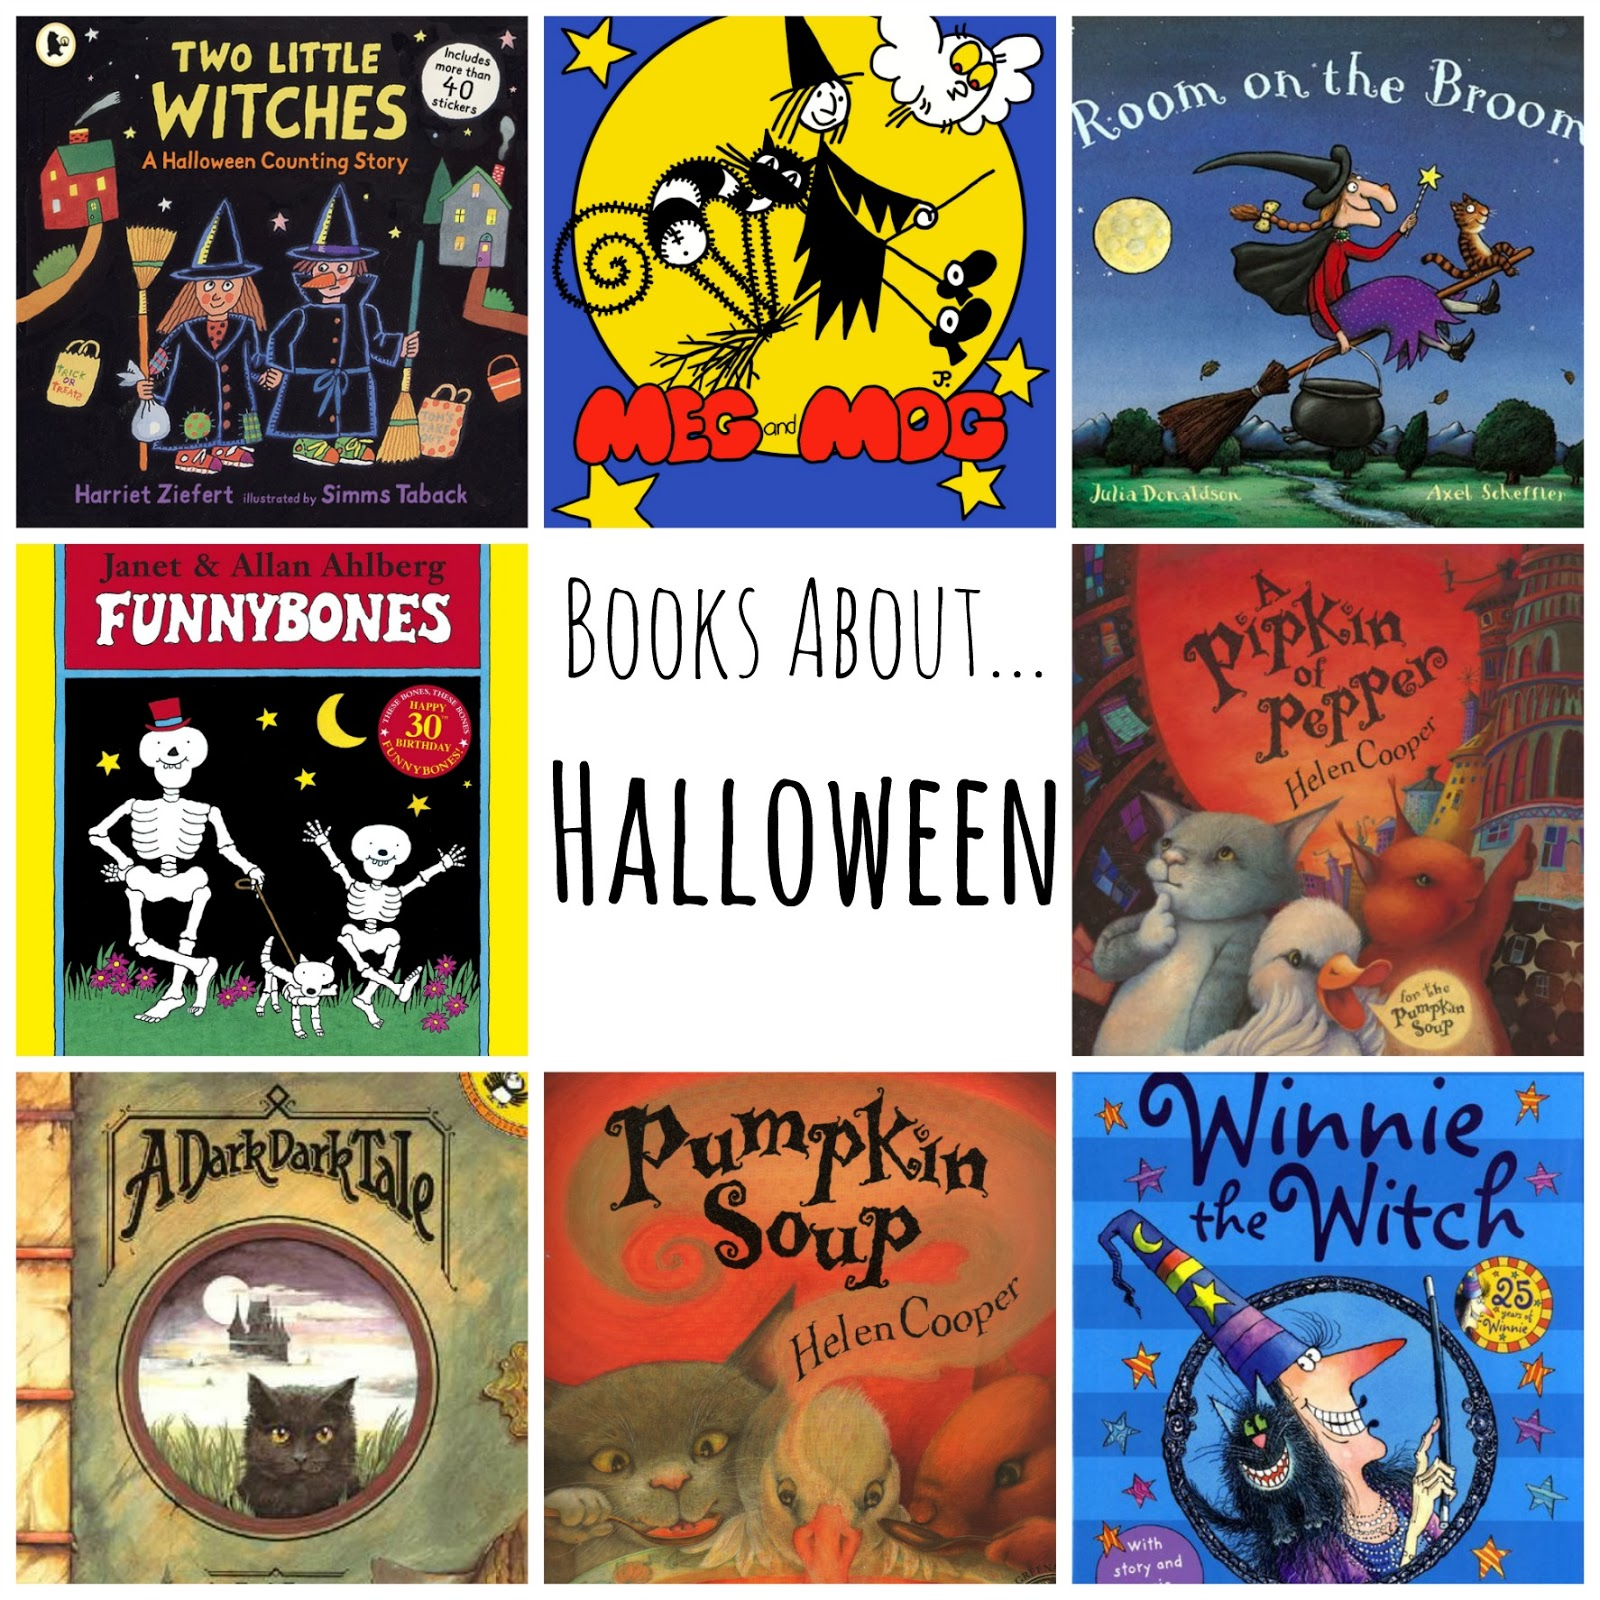 of halloween decorations that seems to get more and more every year so im keeping it simple lets look at some quality childrens picture books to